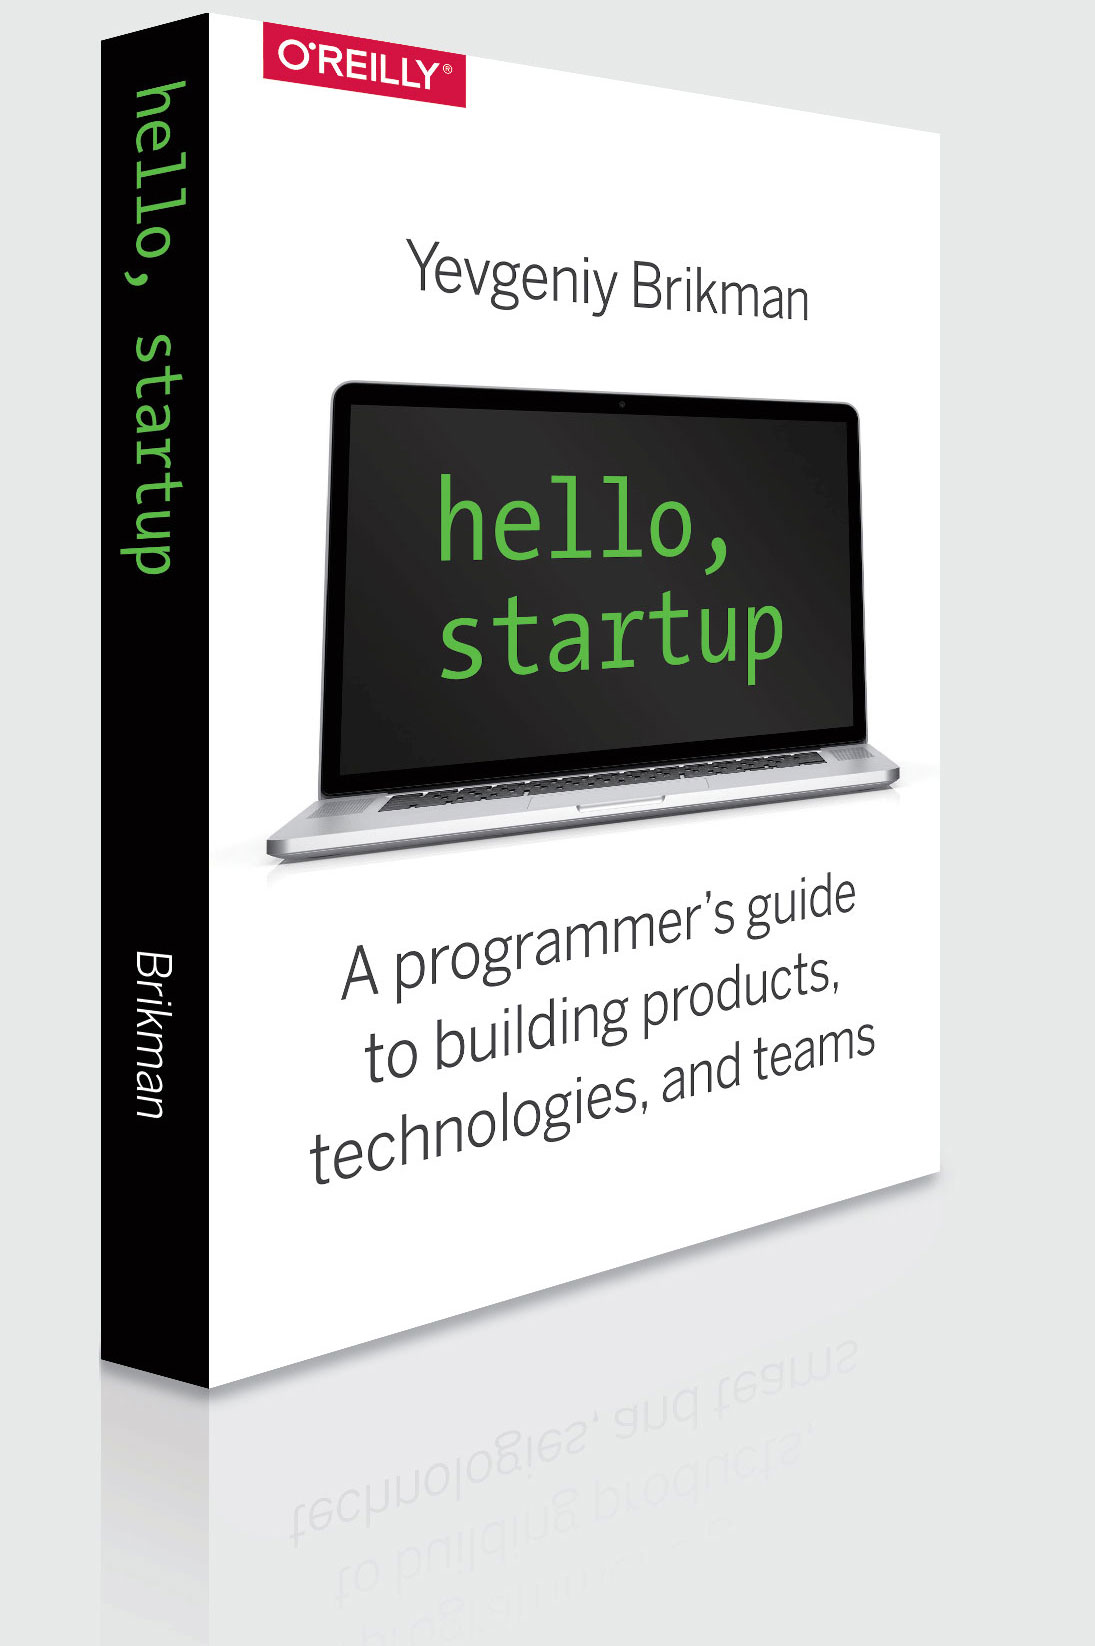 Hello, Startup: A Programmer's Guide to Building Products, Technologies, and Teams -- an O'Reilly book by Yevgeniy Brikman.